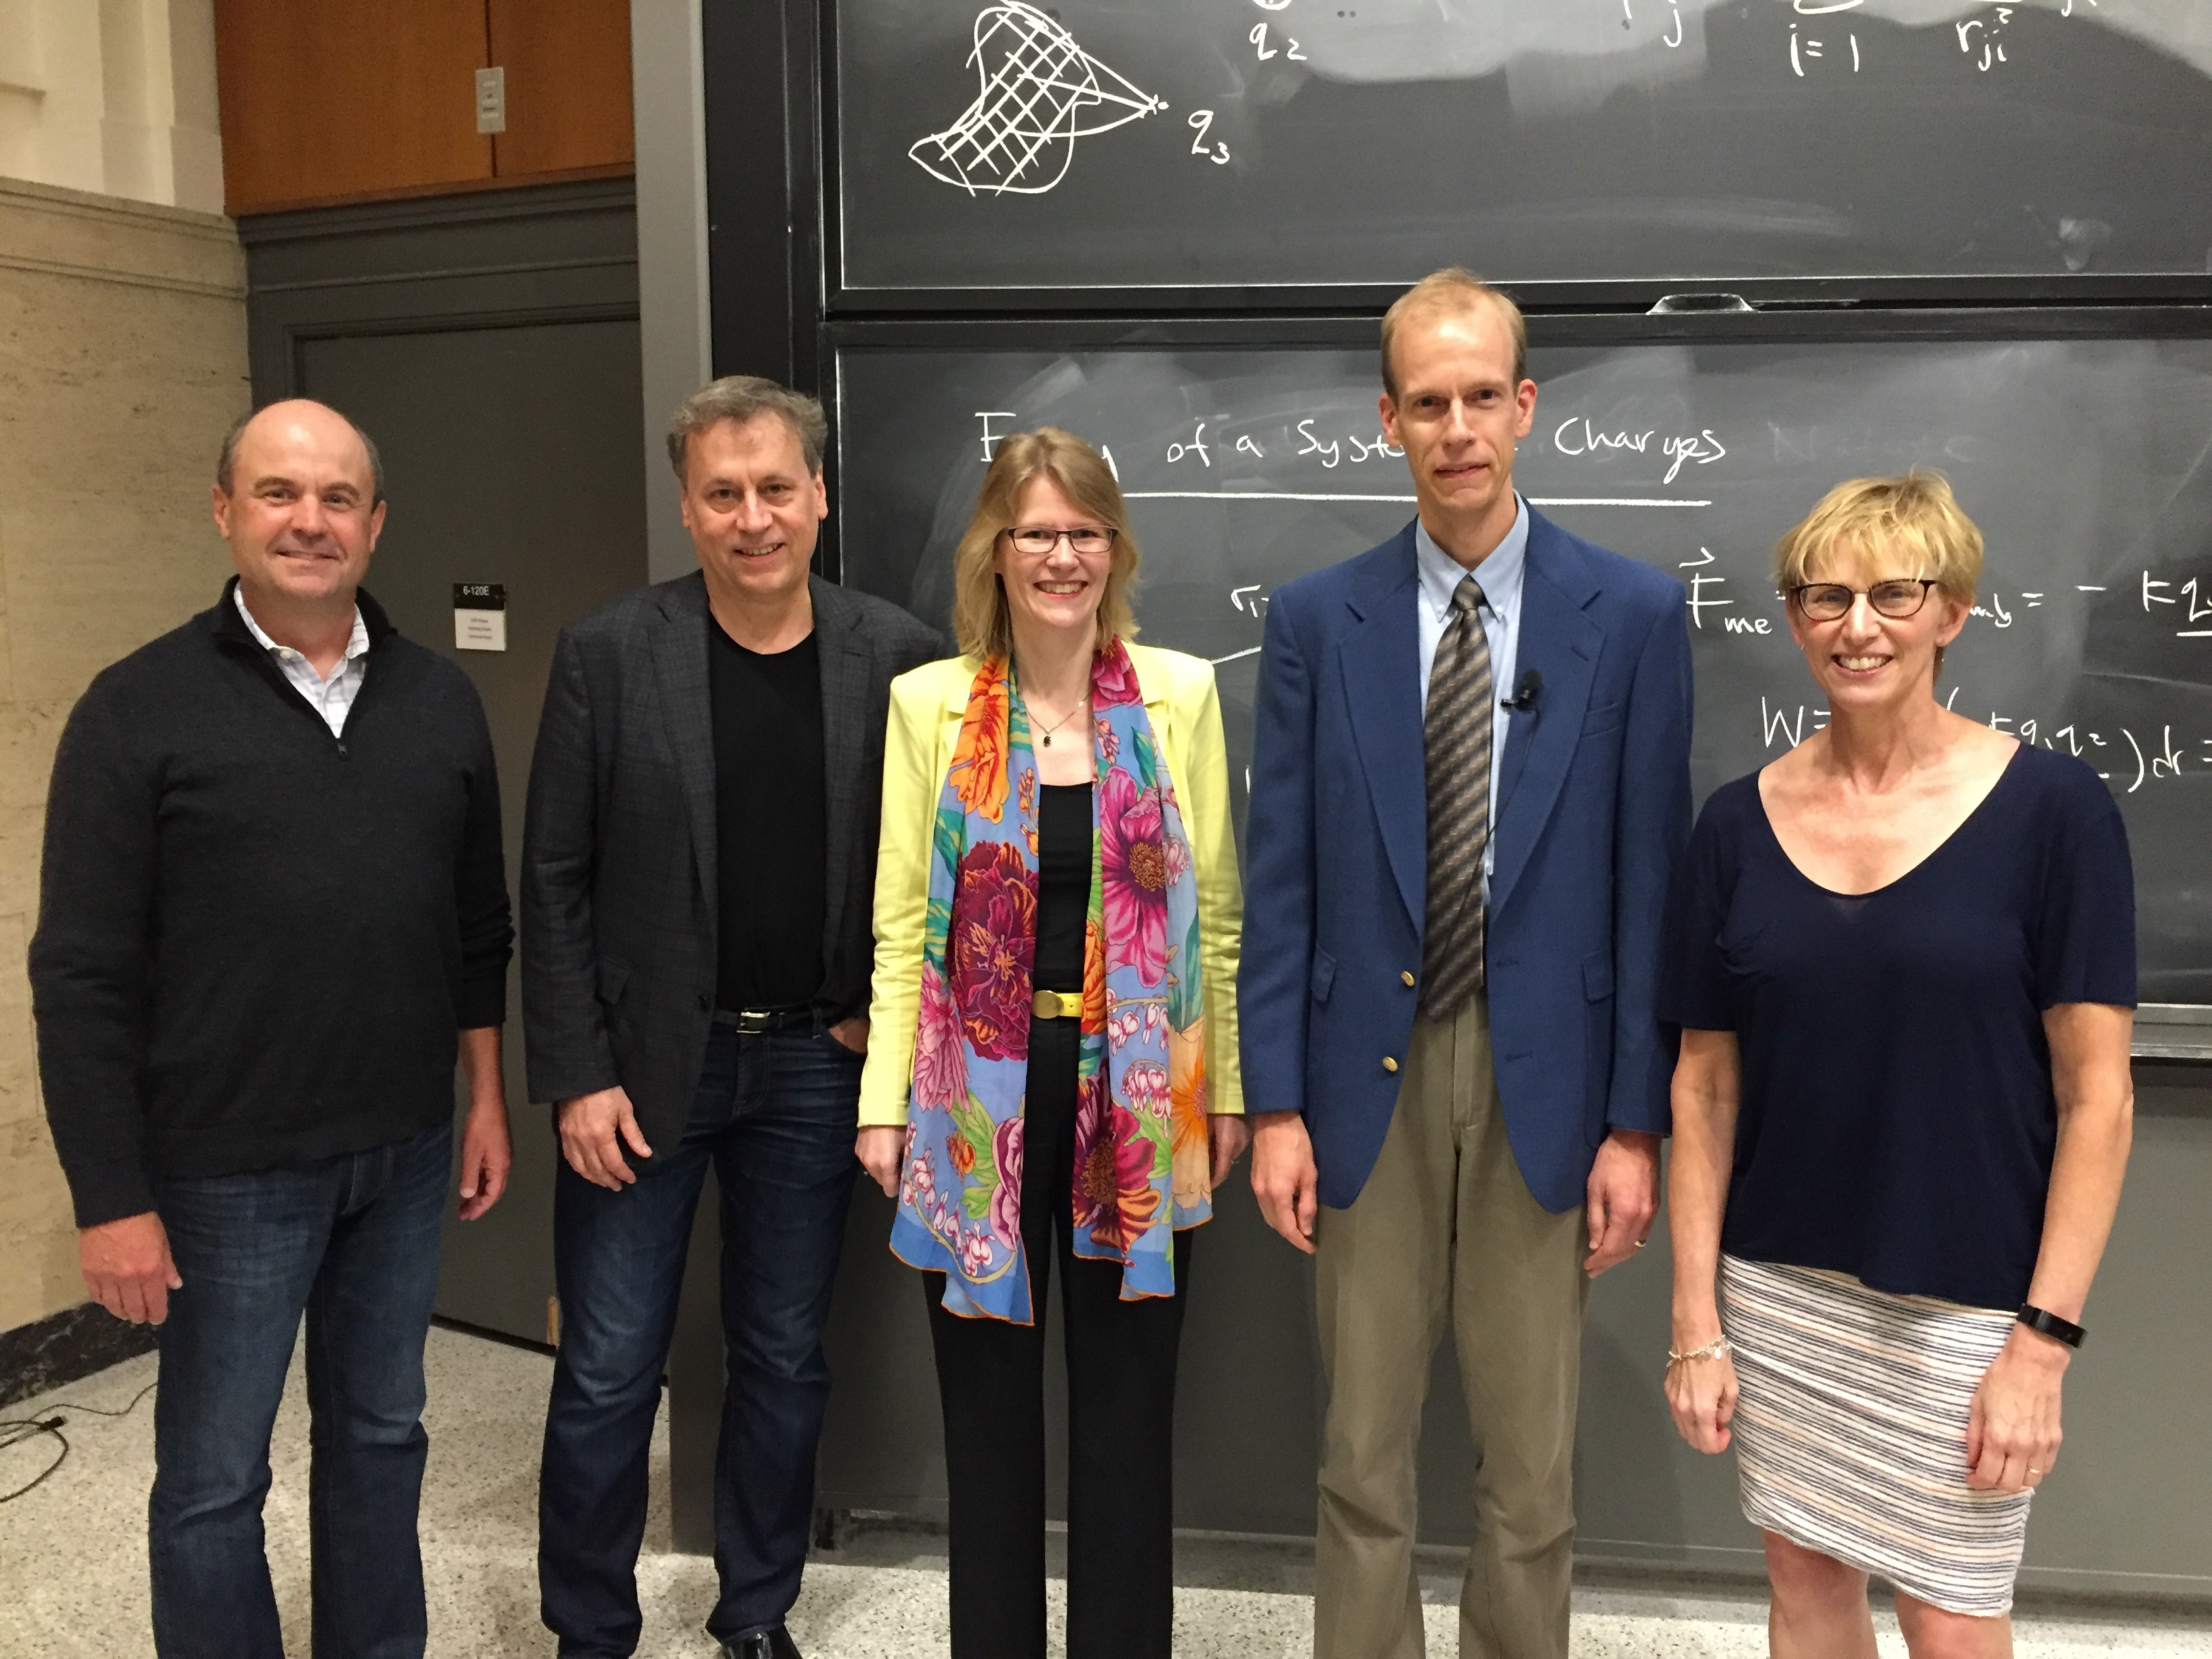 MIT Faculty and visiting speakers pose in a lecture hall.